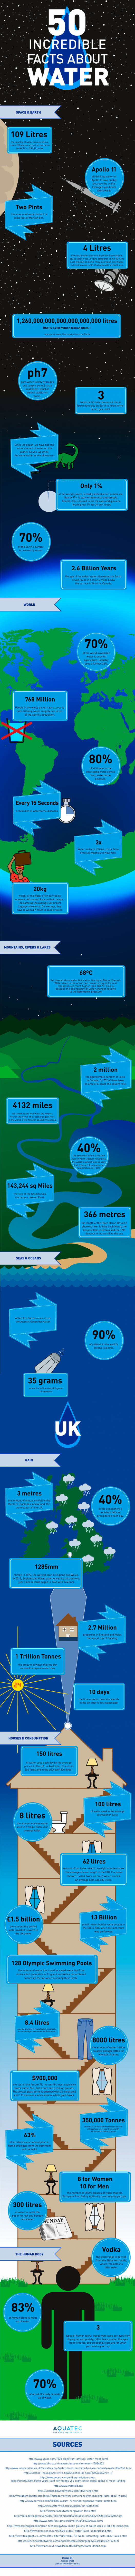 50 Incredible Facts About Water PNG